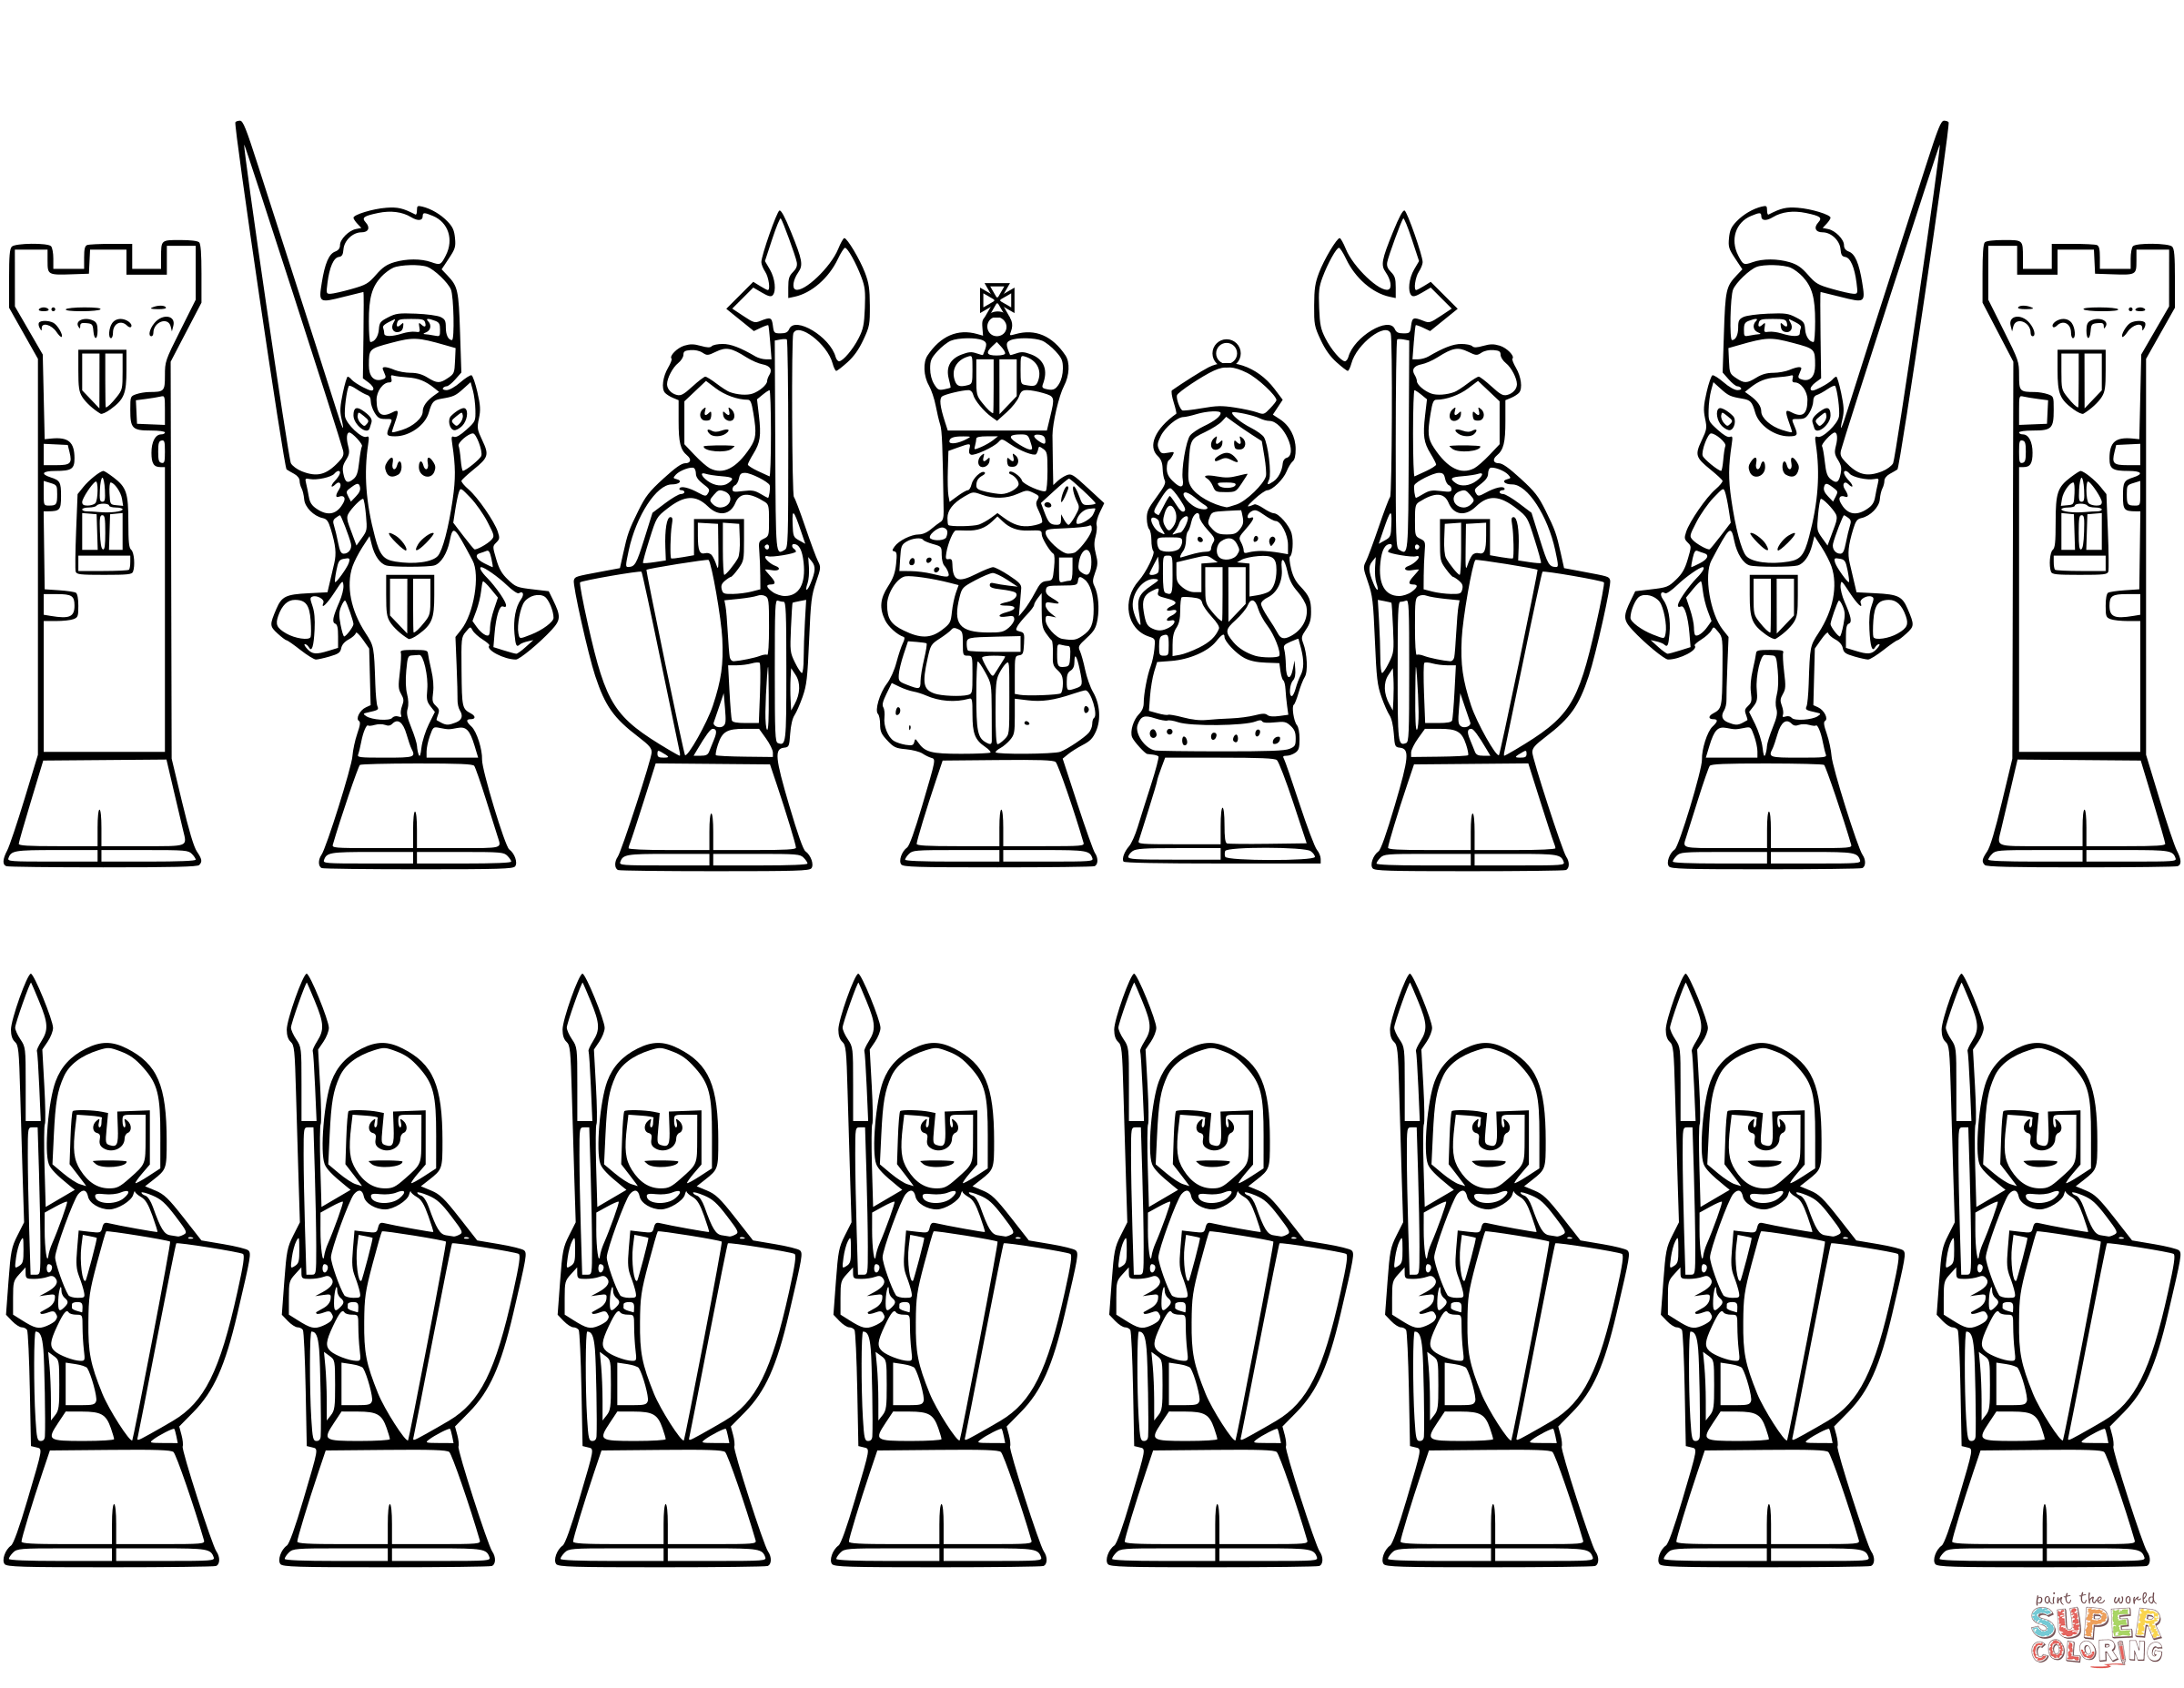 All Chess Pieces Coloring Page